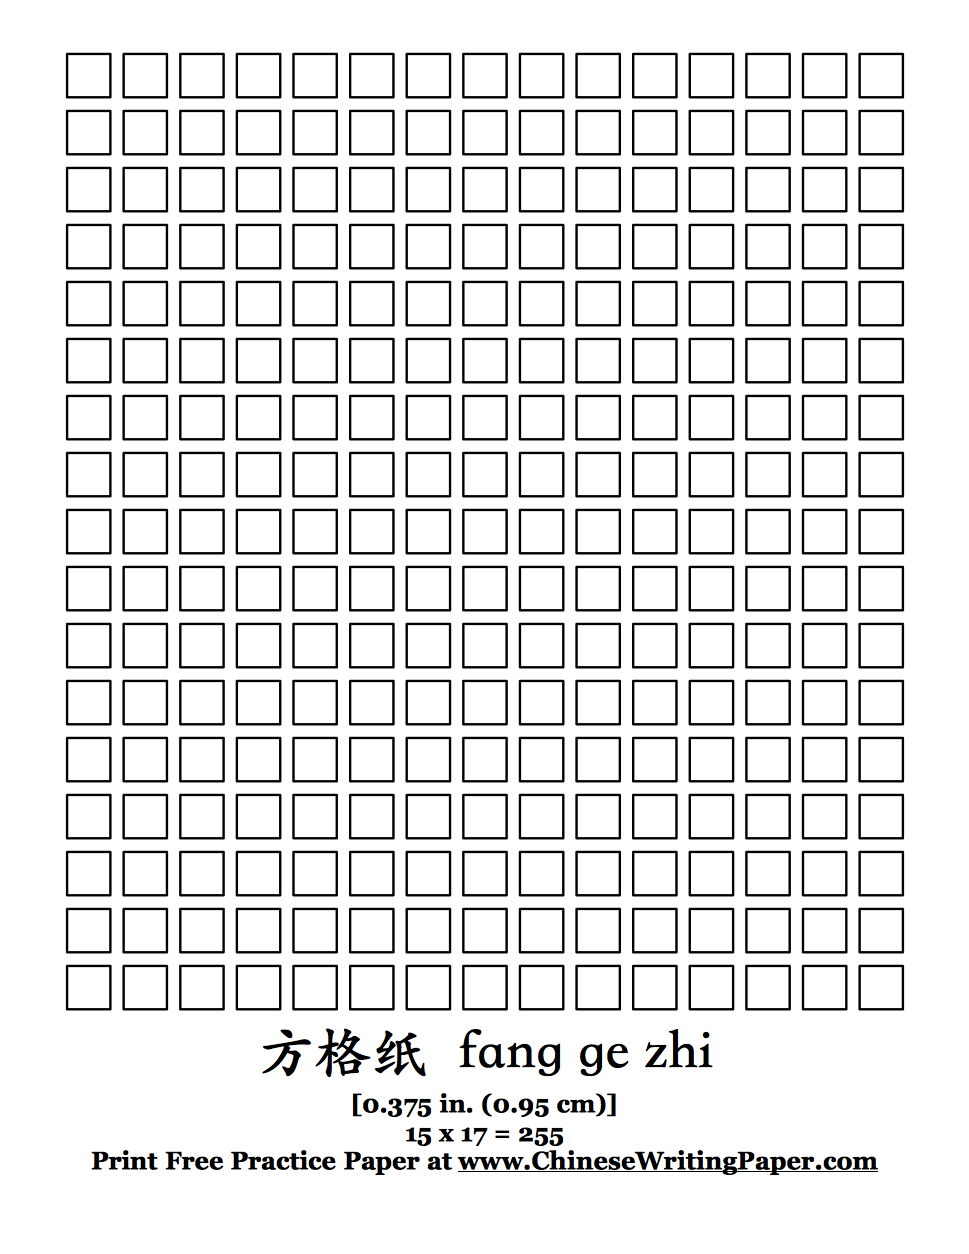 Rollaword furthermore Xconfirmation Copybook Manuscript   Pagespeed Ic Kflalrzga in addition Fanggezhi Letter Chinese Writing Paper additionally Dotted likewise Original. on blank handwriting sheets pdf for free